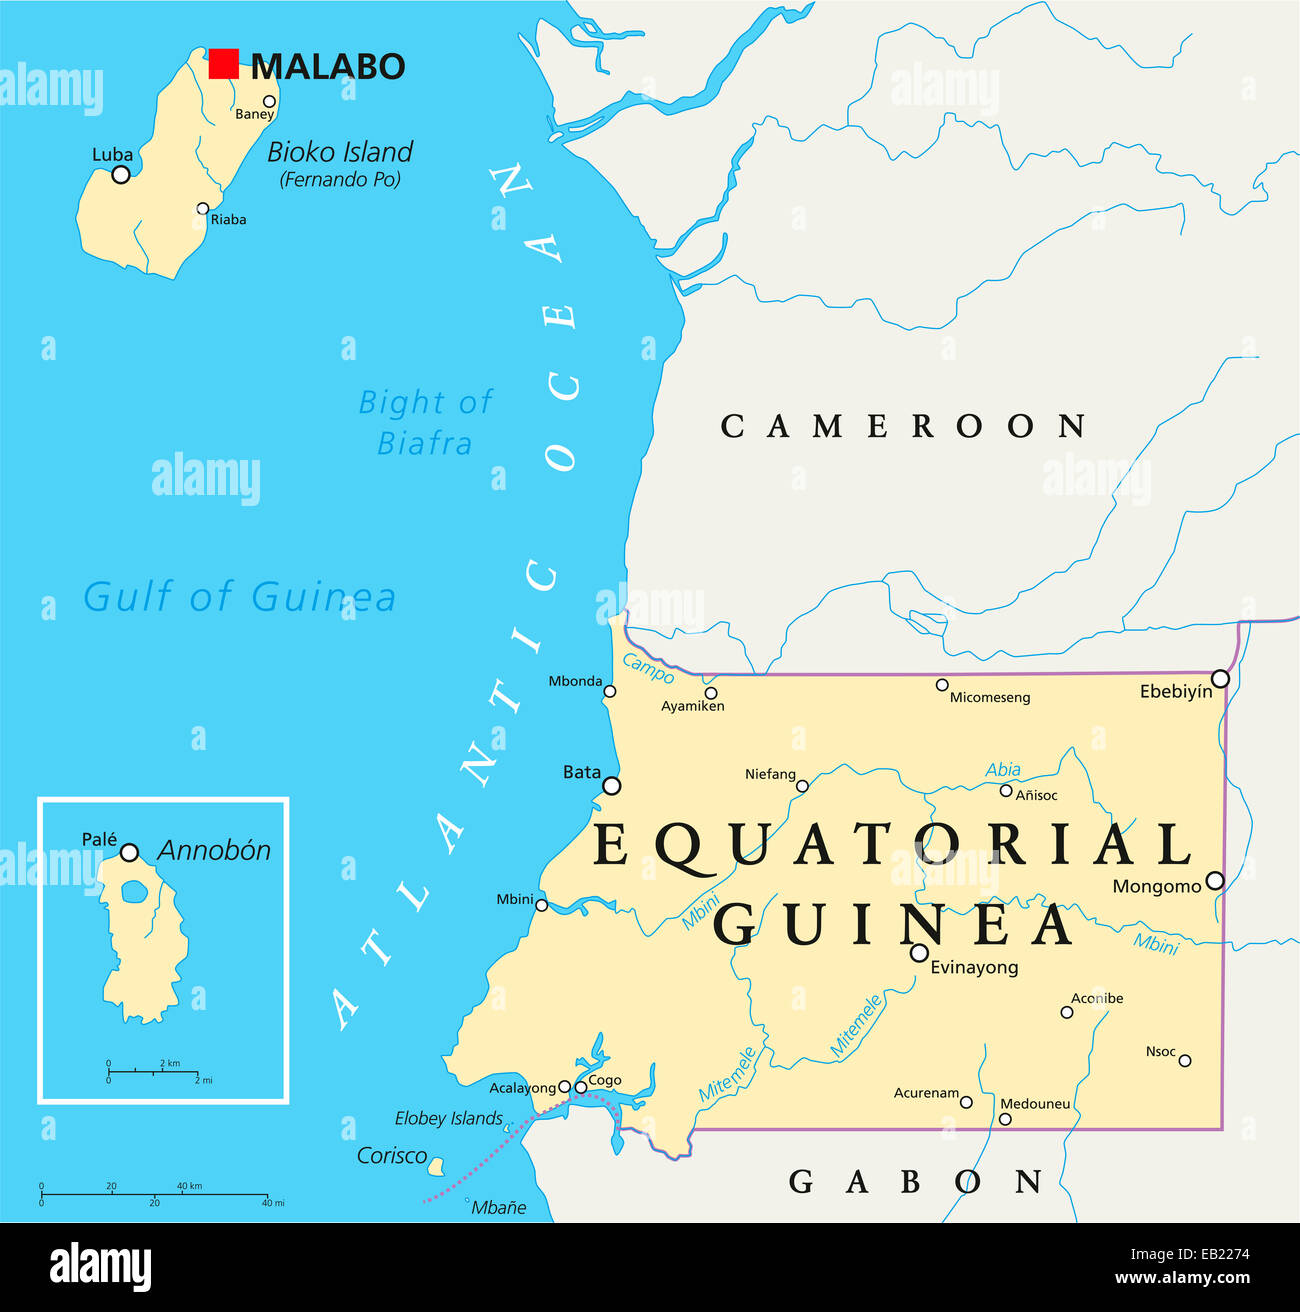 Equatorial guinea political map with capital malabo national equatorial guinea political map with capital malabo national borders important cities and rivers english labeling and scaling gumiabroncs Images